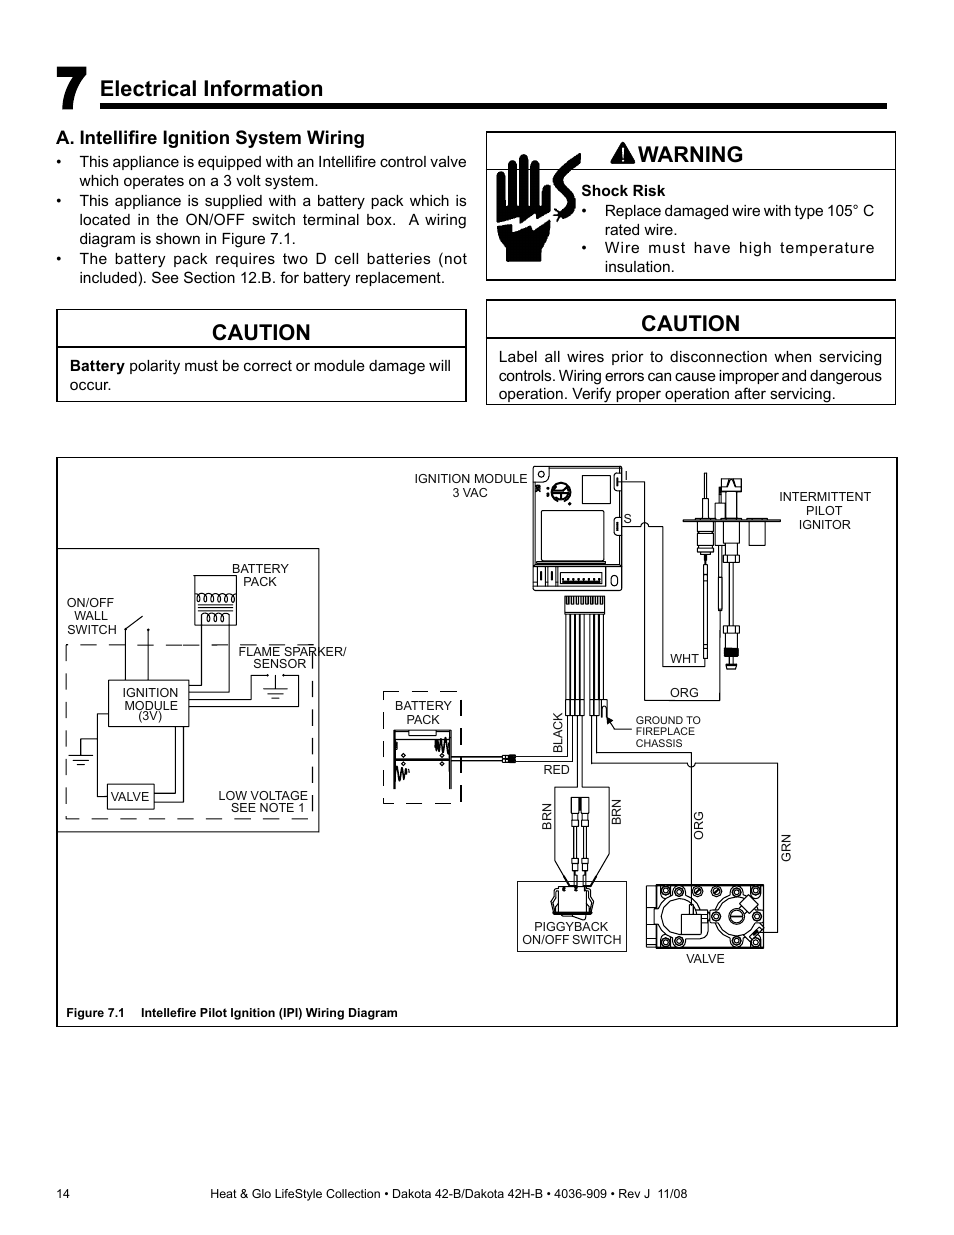 Caution Electrical Information Warning Hearth And Home 14 Volt Battery Wiring Diagram Technologies Dakota 42 B User Manual Page 36